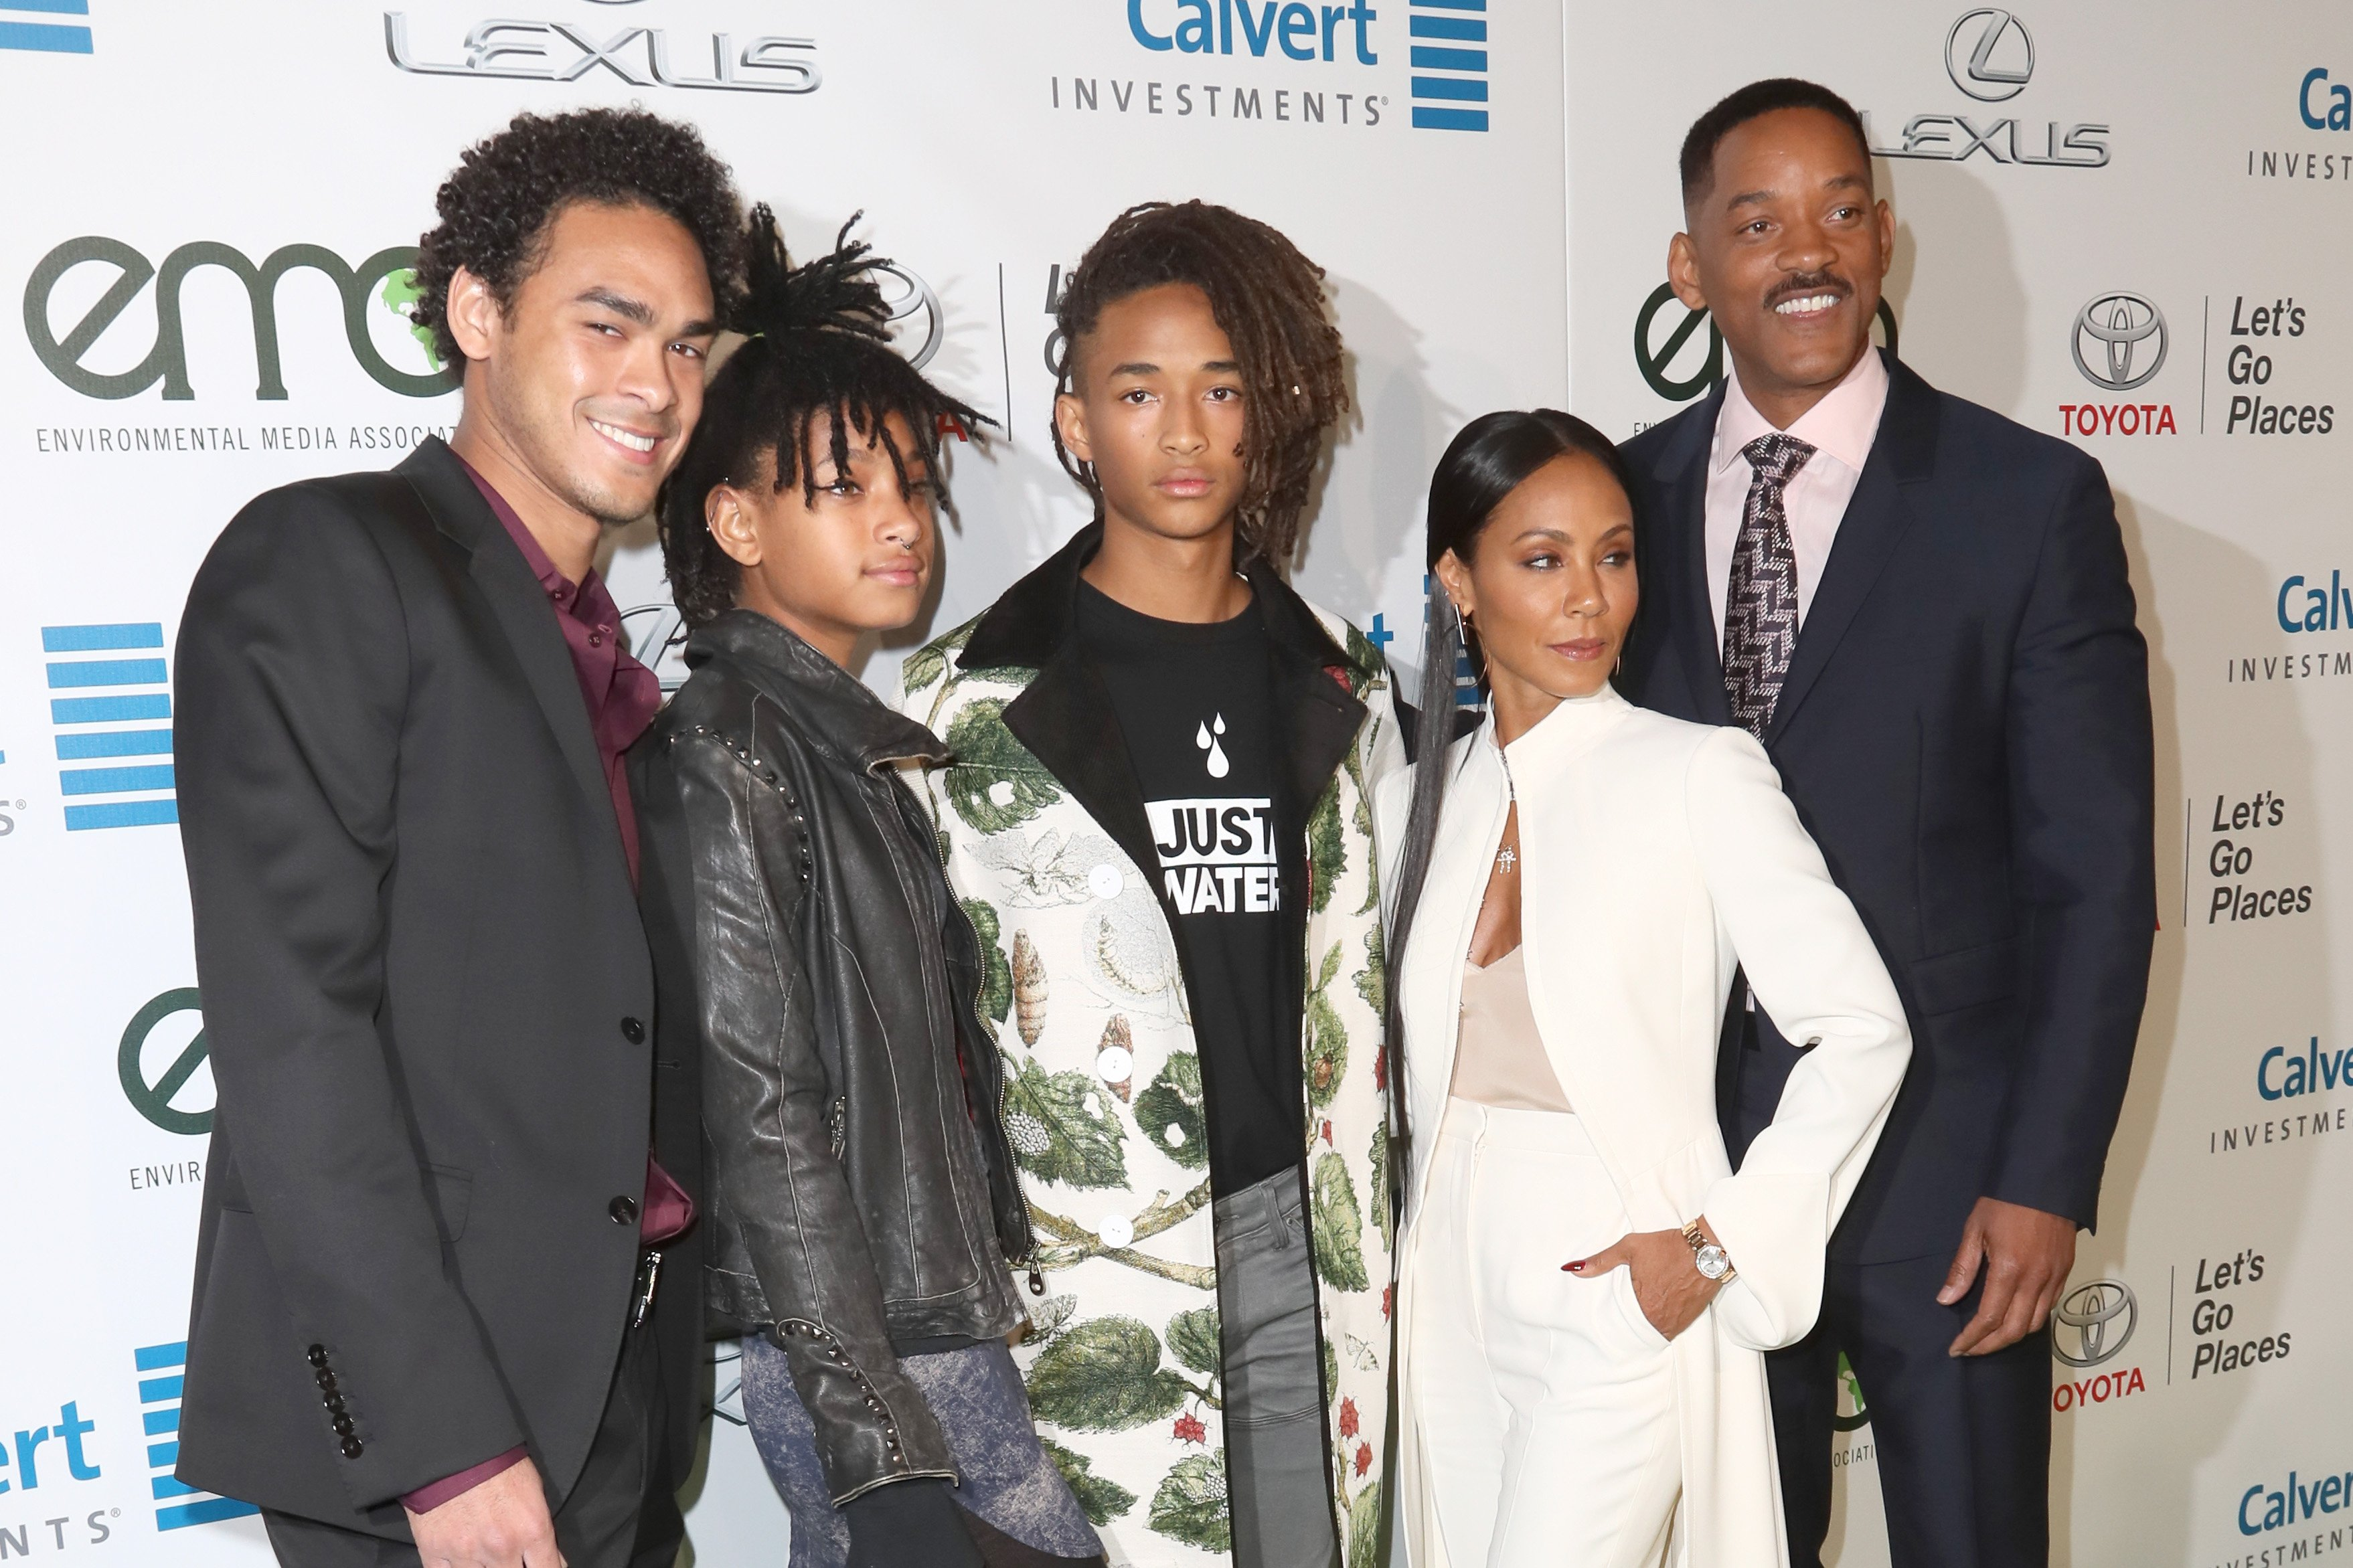 (L-R) Trey, Willow, Jaden, Jada & Will Smith at the 26th Annual EMA Awards on Oct. 22, 2016 in California | Photo: Getty Images